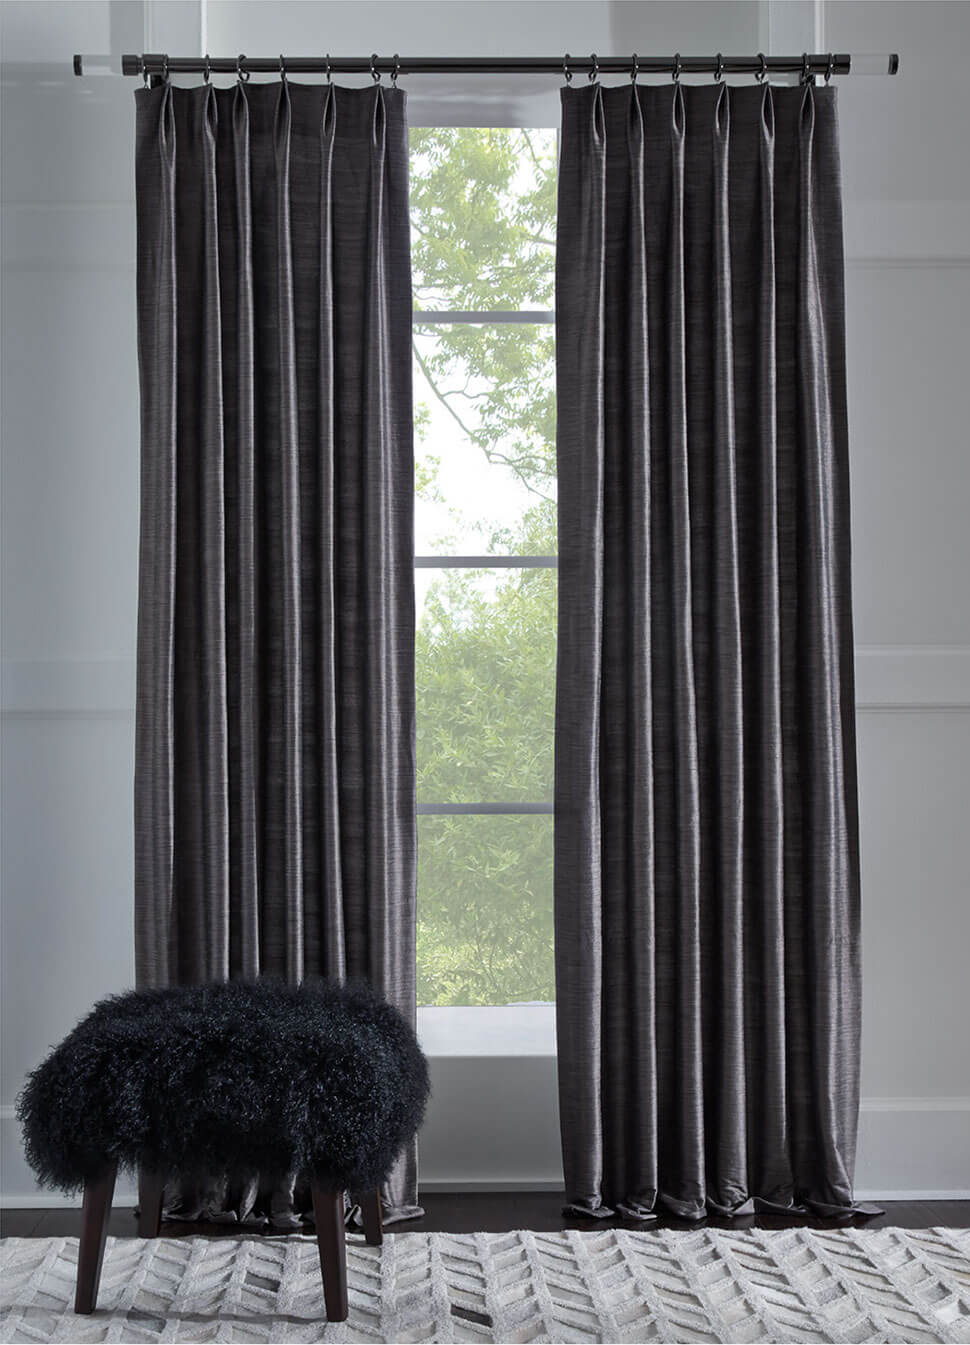 Kingsley drapery collection: Semi-Sheers